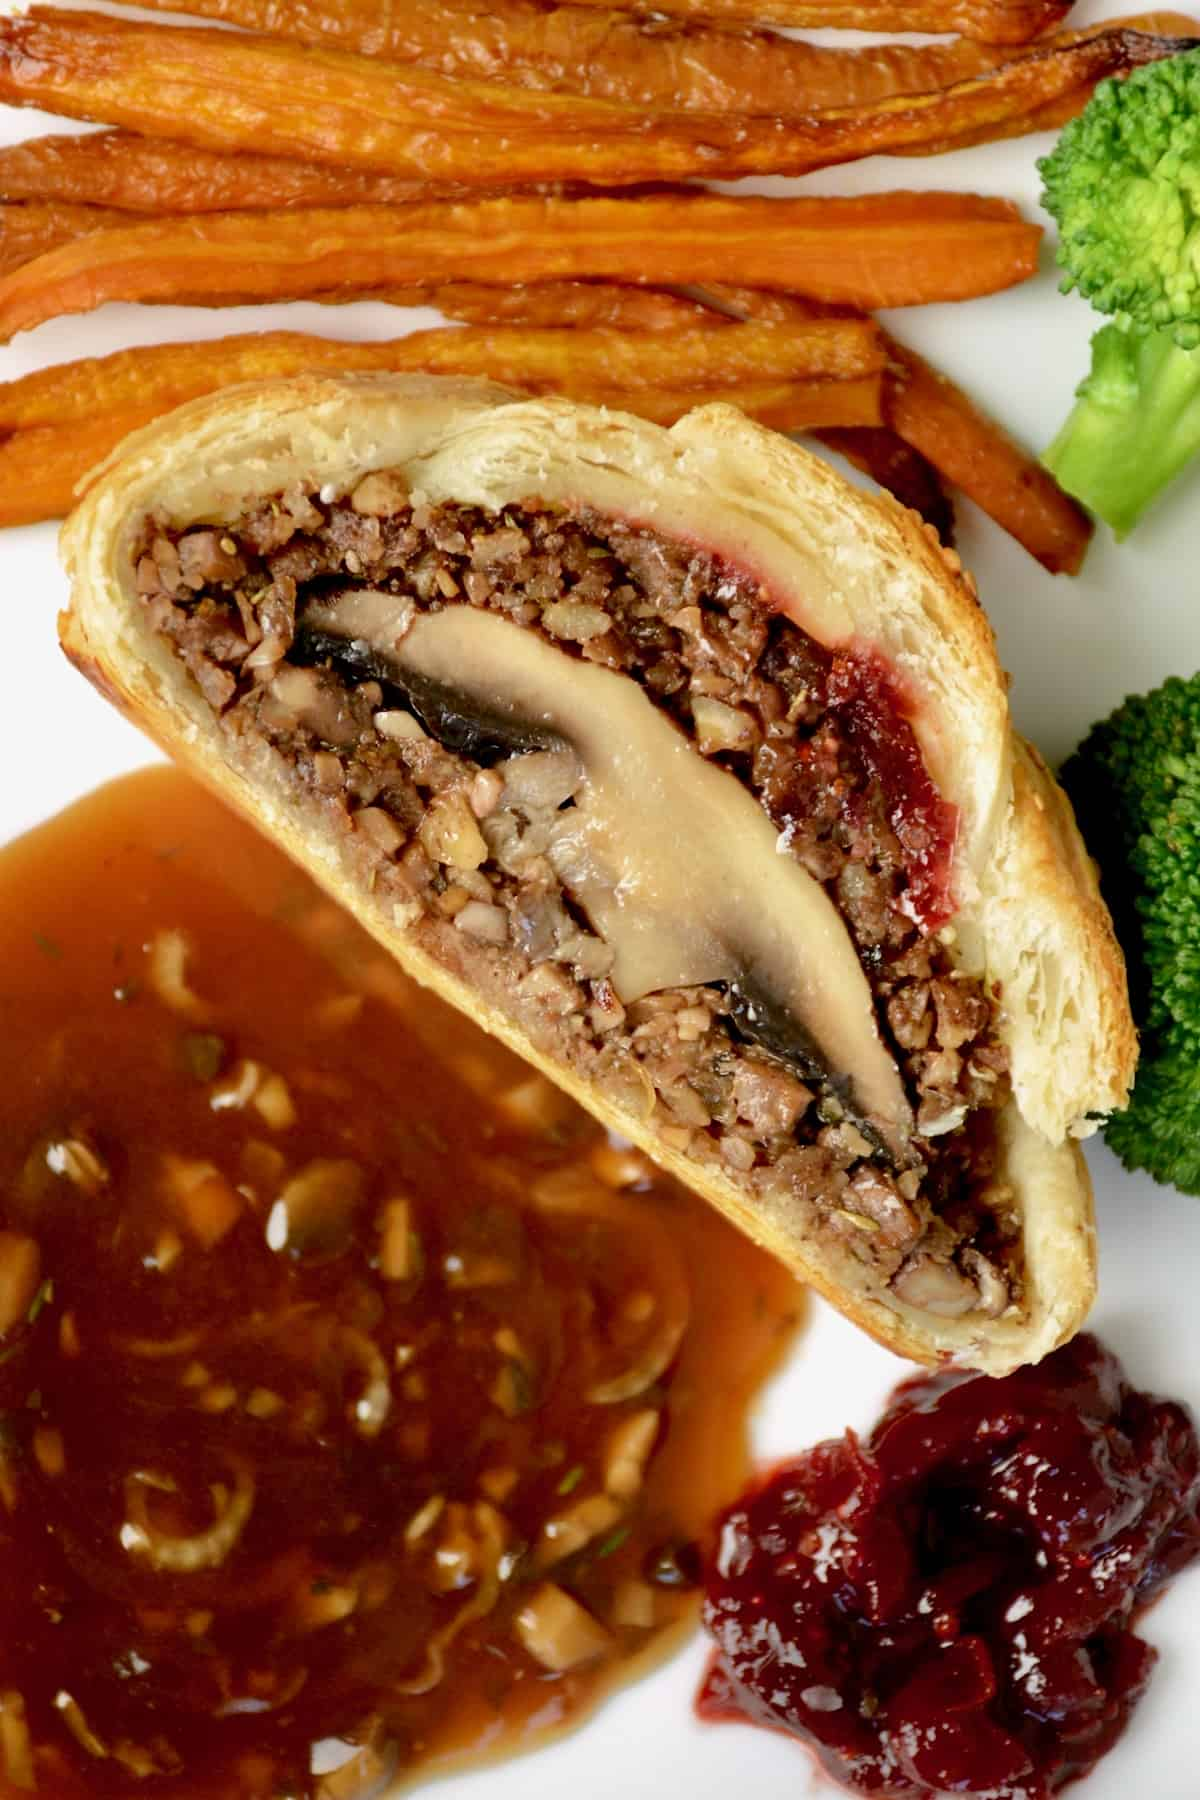 A slice of wellington revealing the cross section of a whole portobello mushroom inside, plated up with some vegetables, gravy and cranberry sauce.